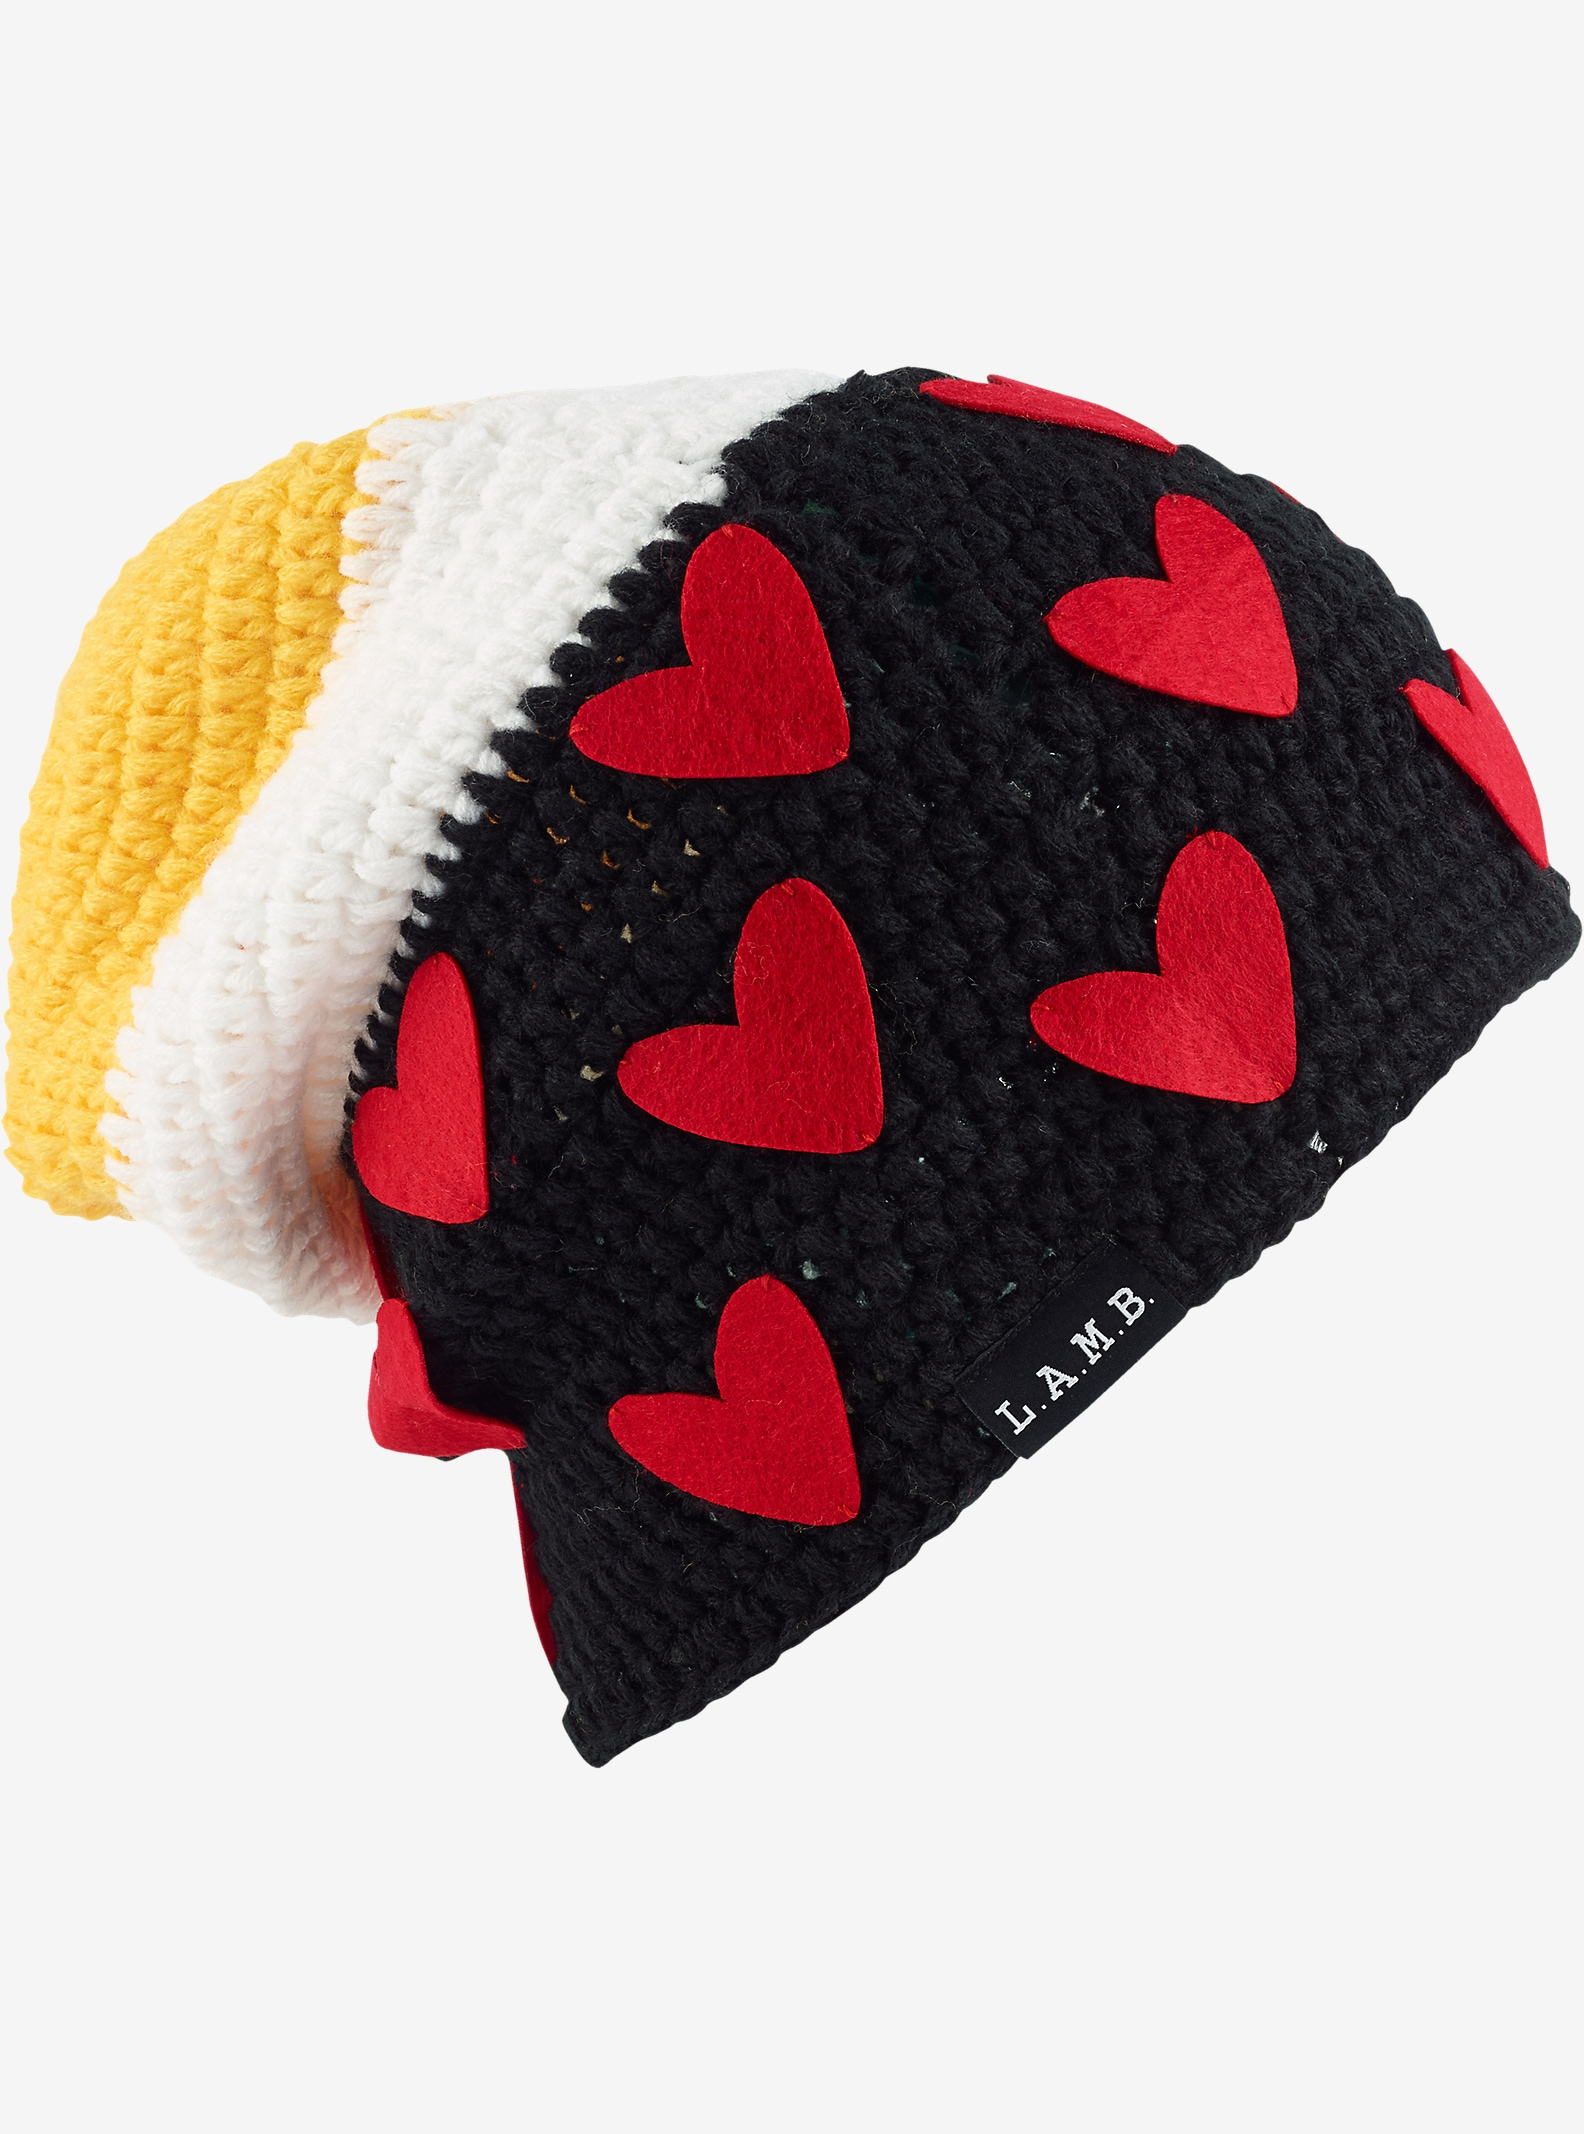 L.A.M.B. x Burton Irie Beanie shown in True Black / Hearts